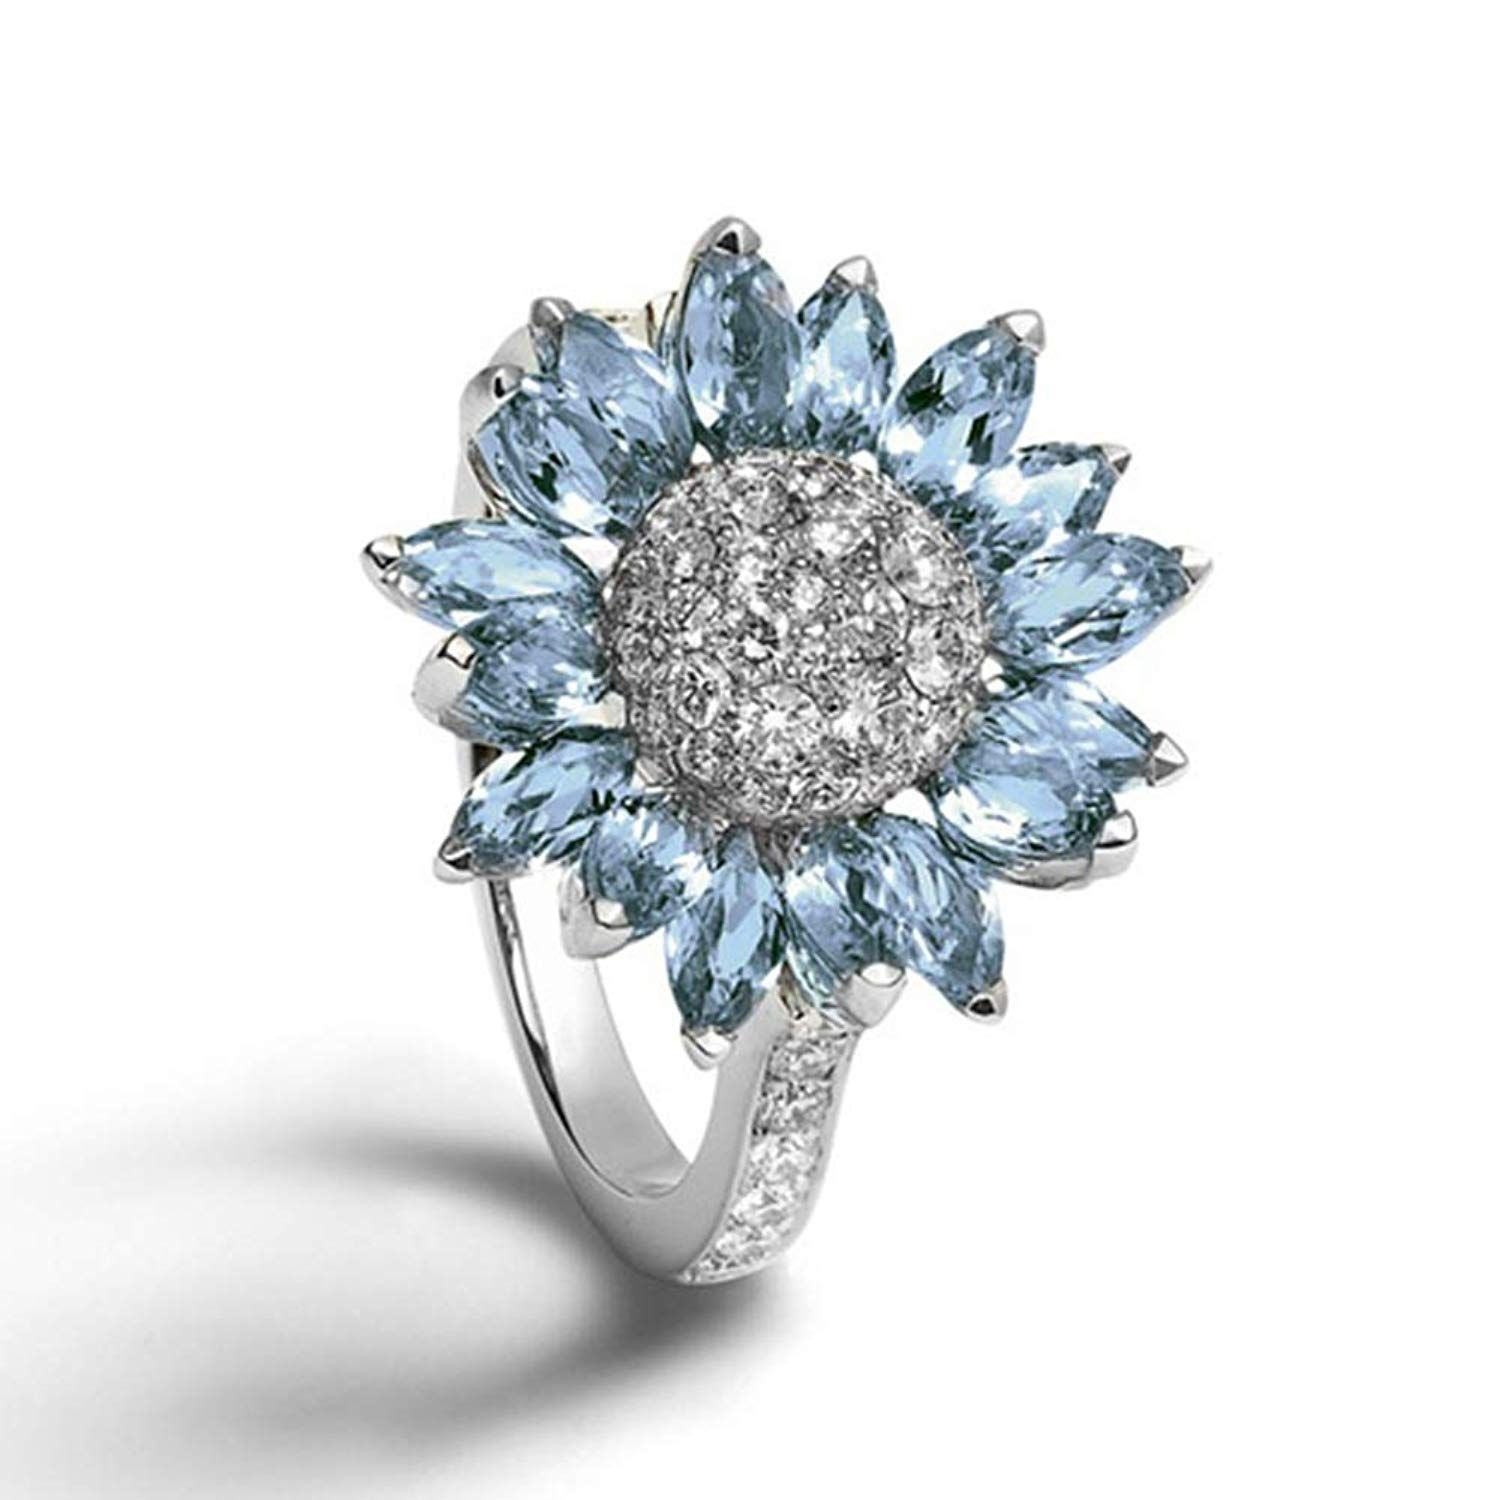 Gorgeous Blue Sapphire Ring Women Jewelry Wedding Engagement Gift Size 6 to 9